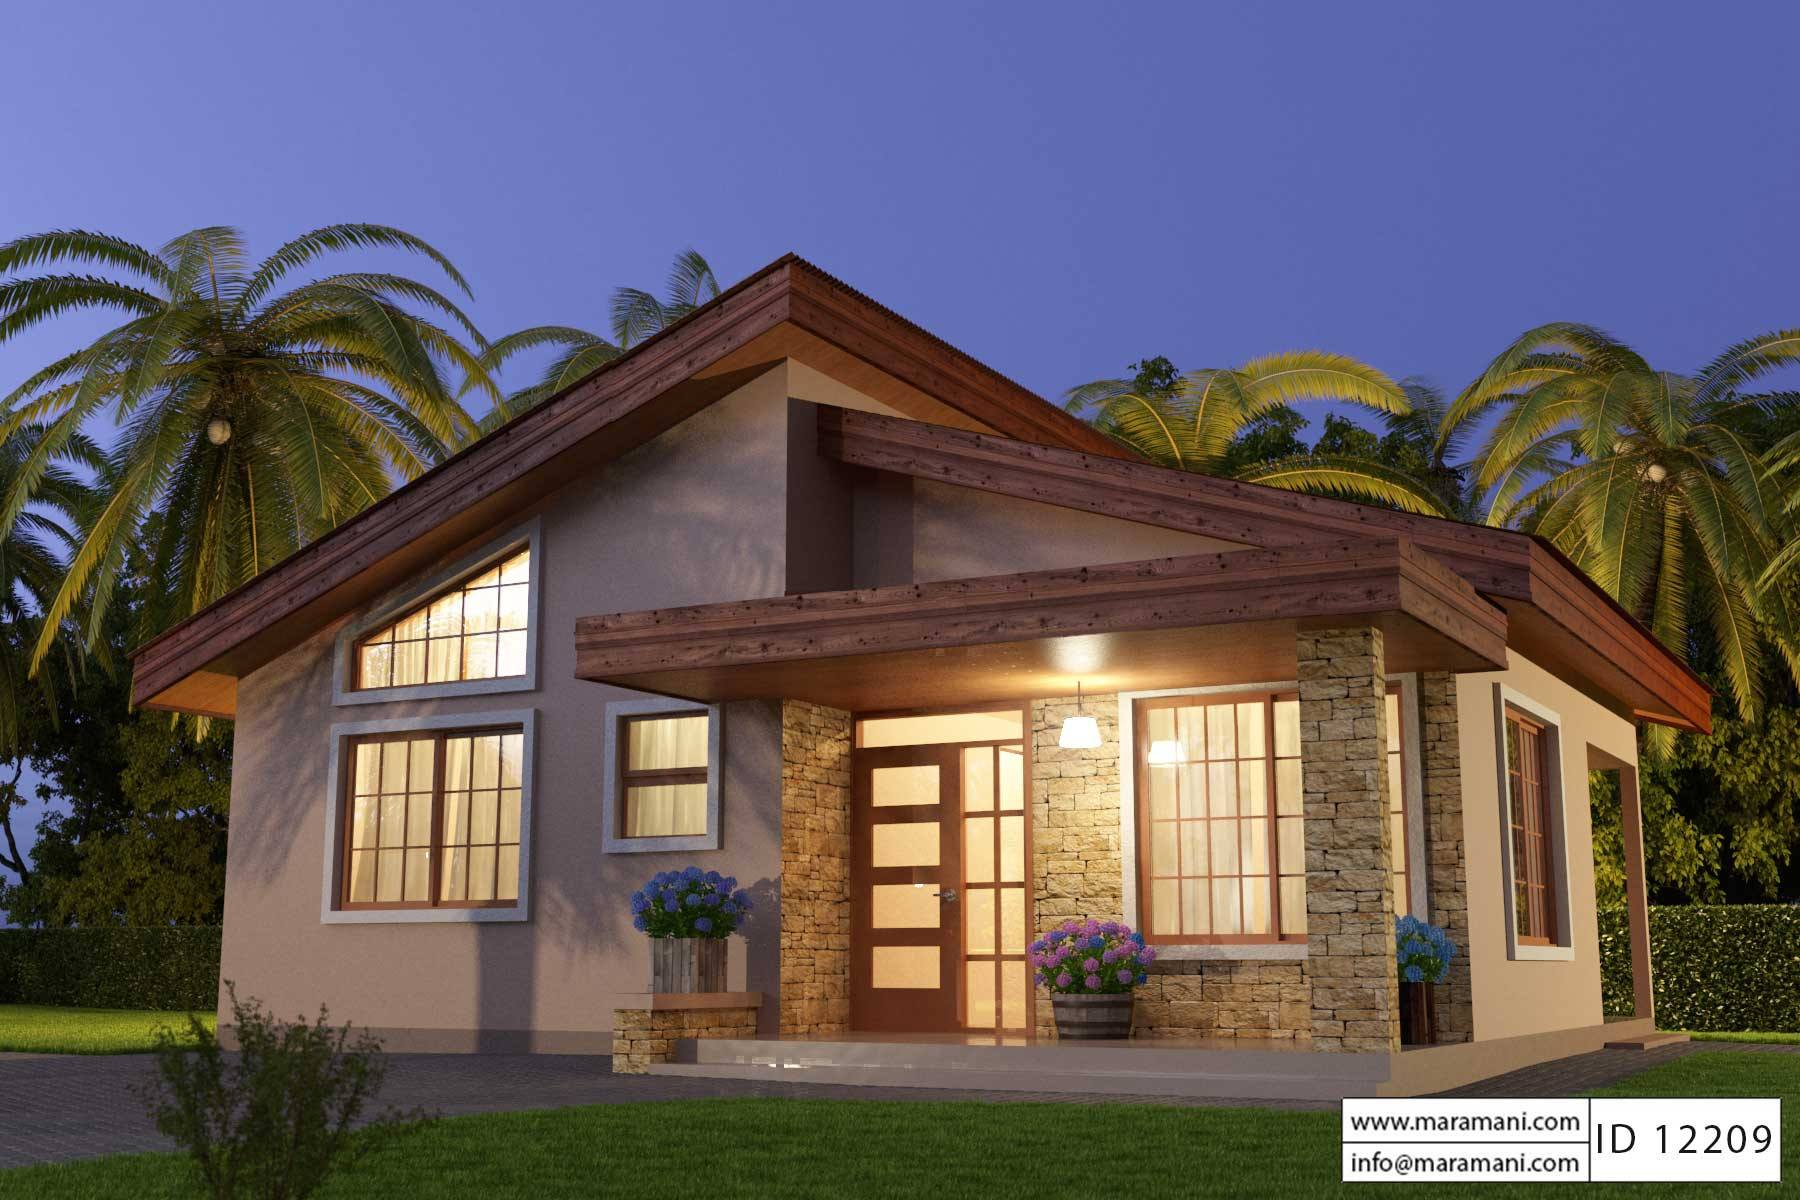 Unique small house plan id12209 floor plans by maramani for Two bedroom house